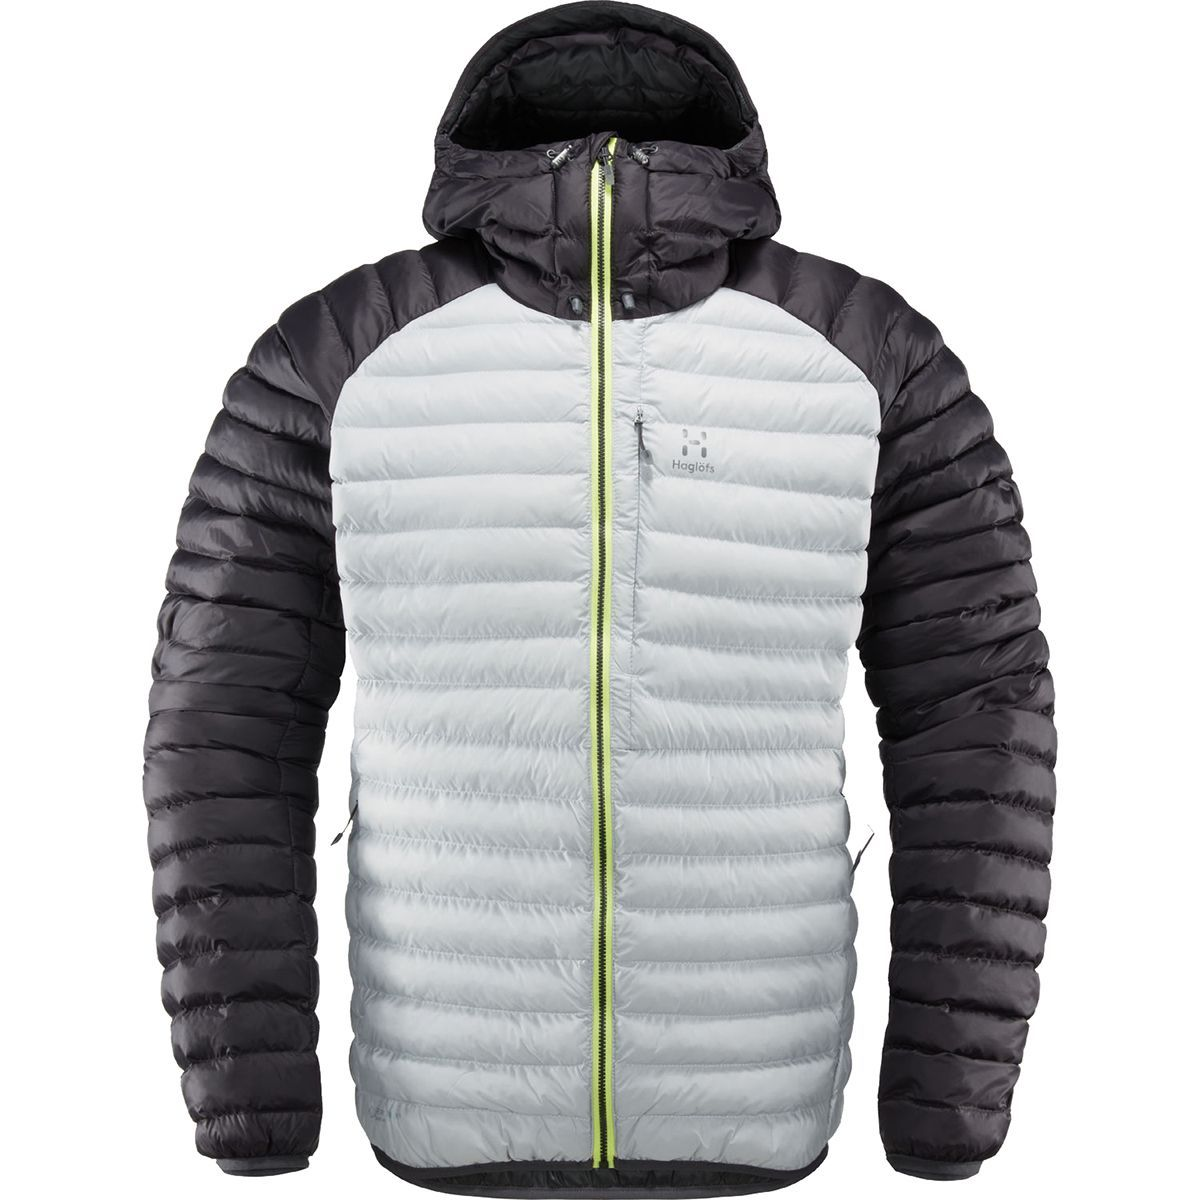 Wantdo Mens Quilted Hoody Jacket Warm Insulated Coat Winter